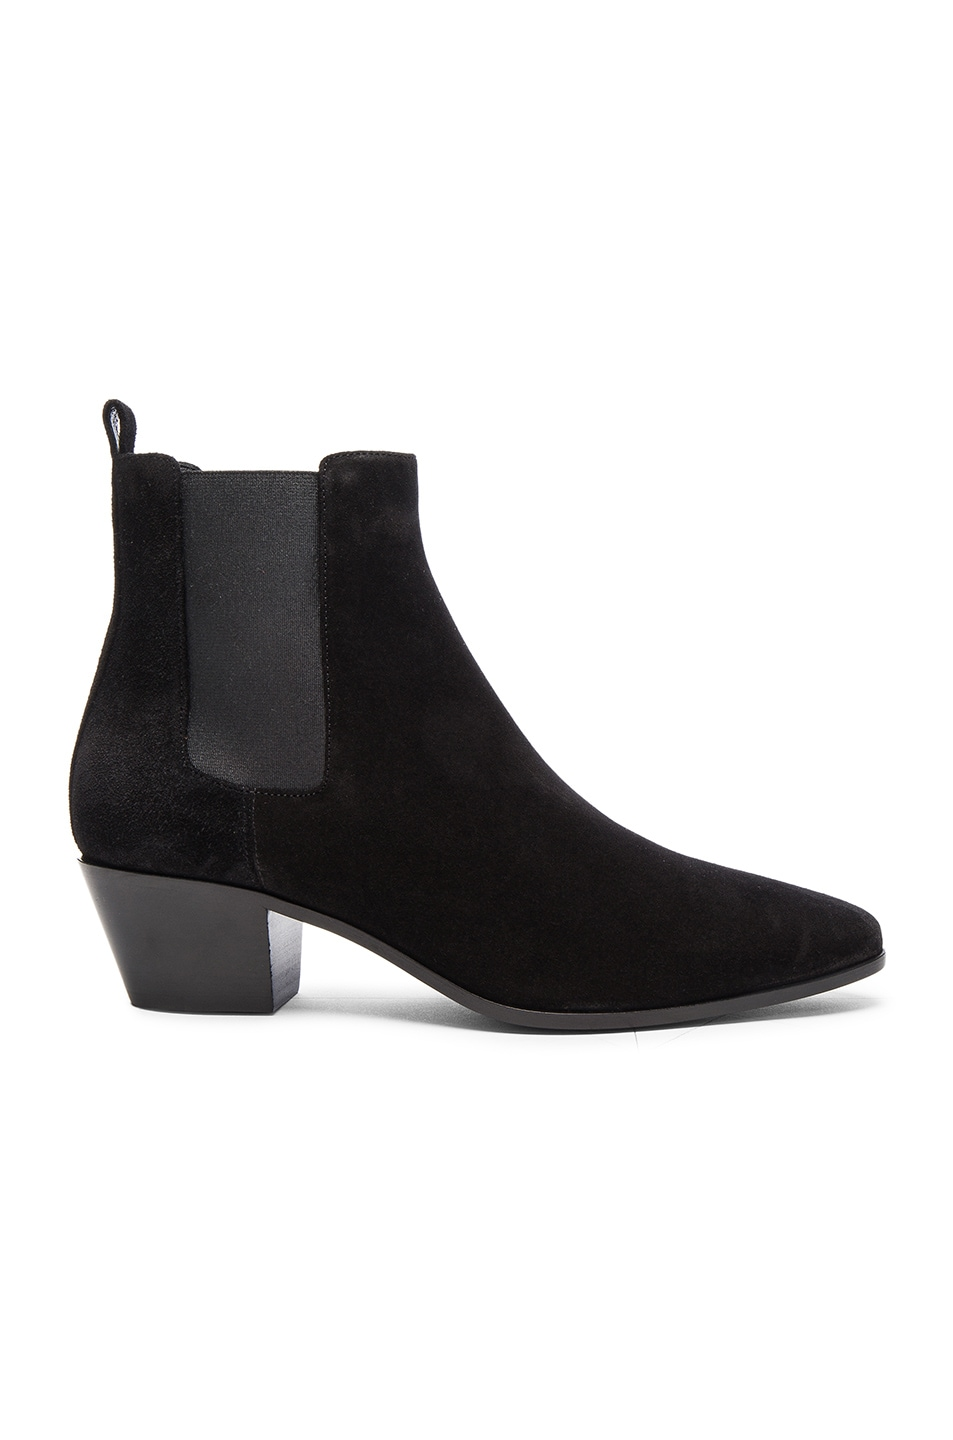 Image 1 of Saint Laurent Suede Rock Chelsea Boots in Black